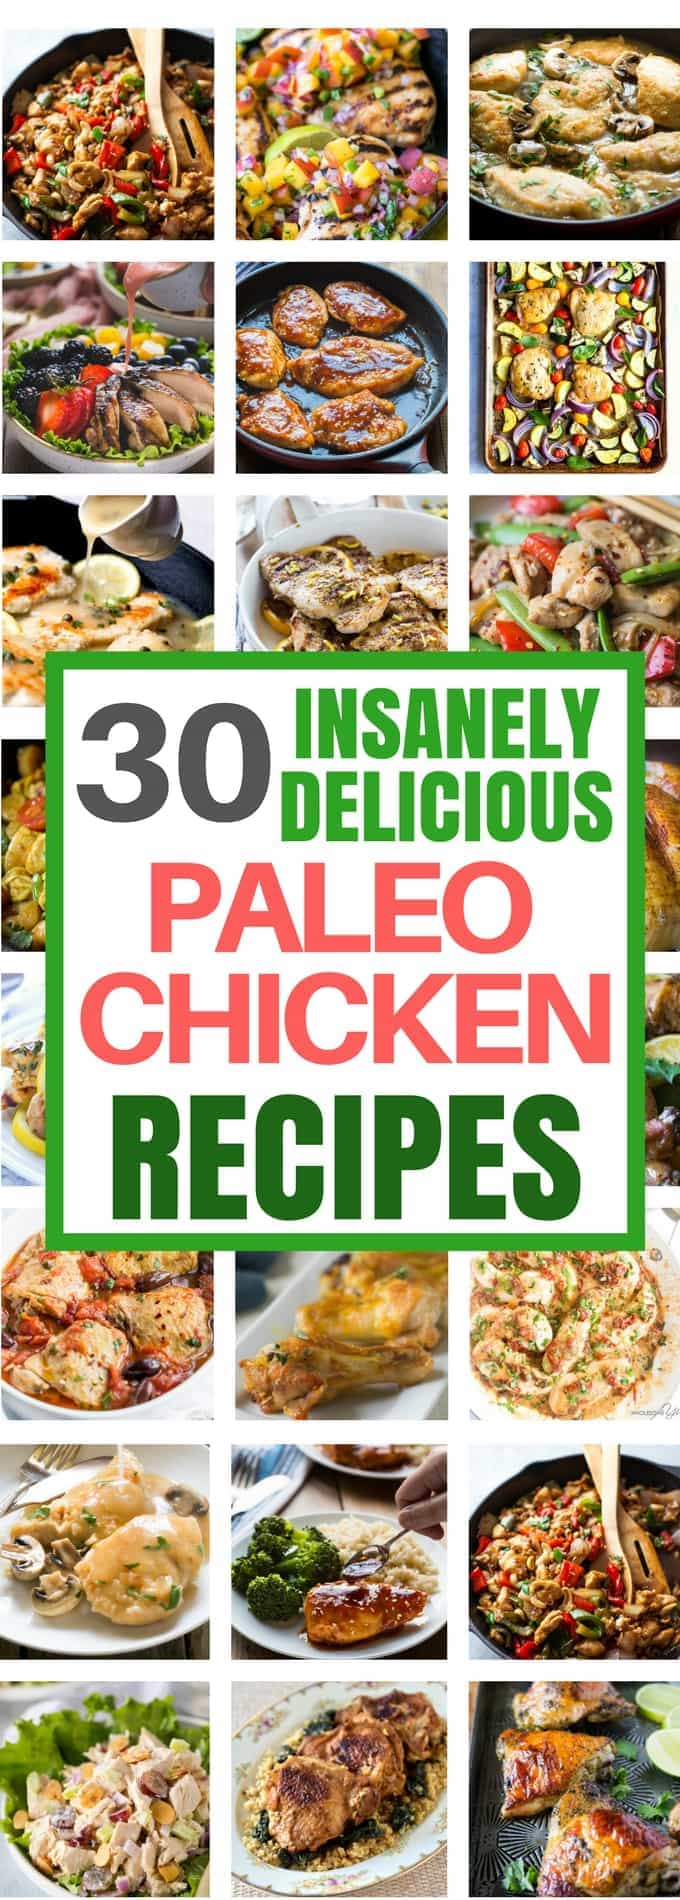 A great collection of some of my most popular Paleo Chicken Recipes that are perfect for lunch or dinner! Paleo Chicken Recipes, Paleo Chicken Salad, Paleo Chicken Tenders, paleo chicken thigh recipes, paleo chicken breast recipes, Paleo Main Course, Paleo dinners